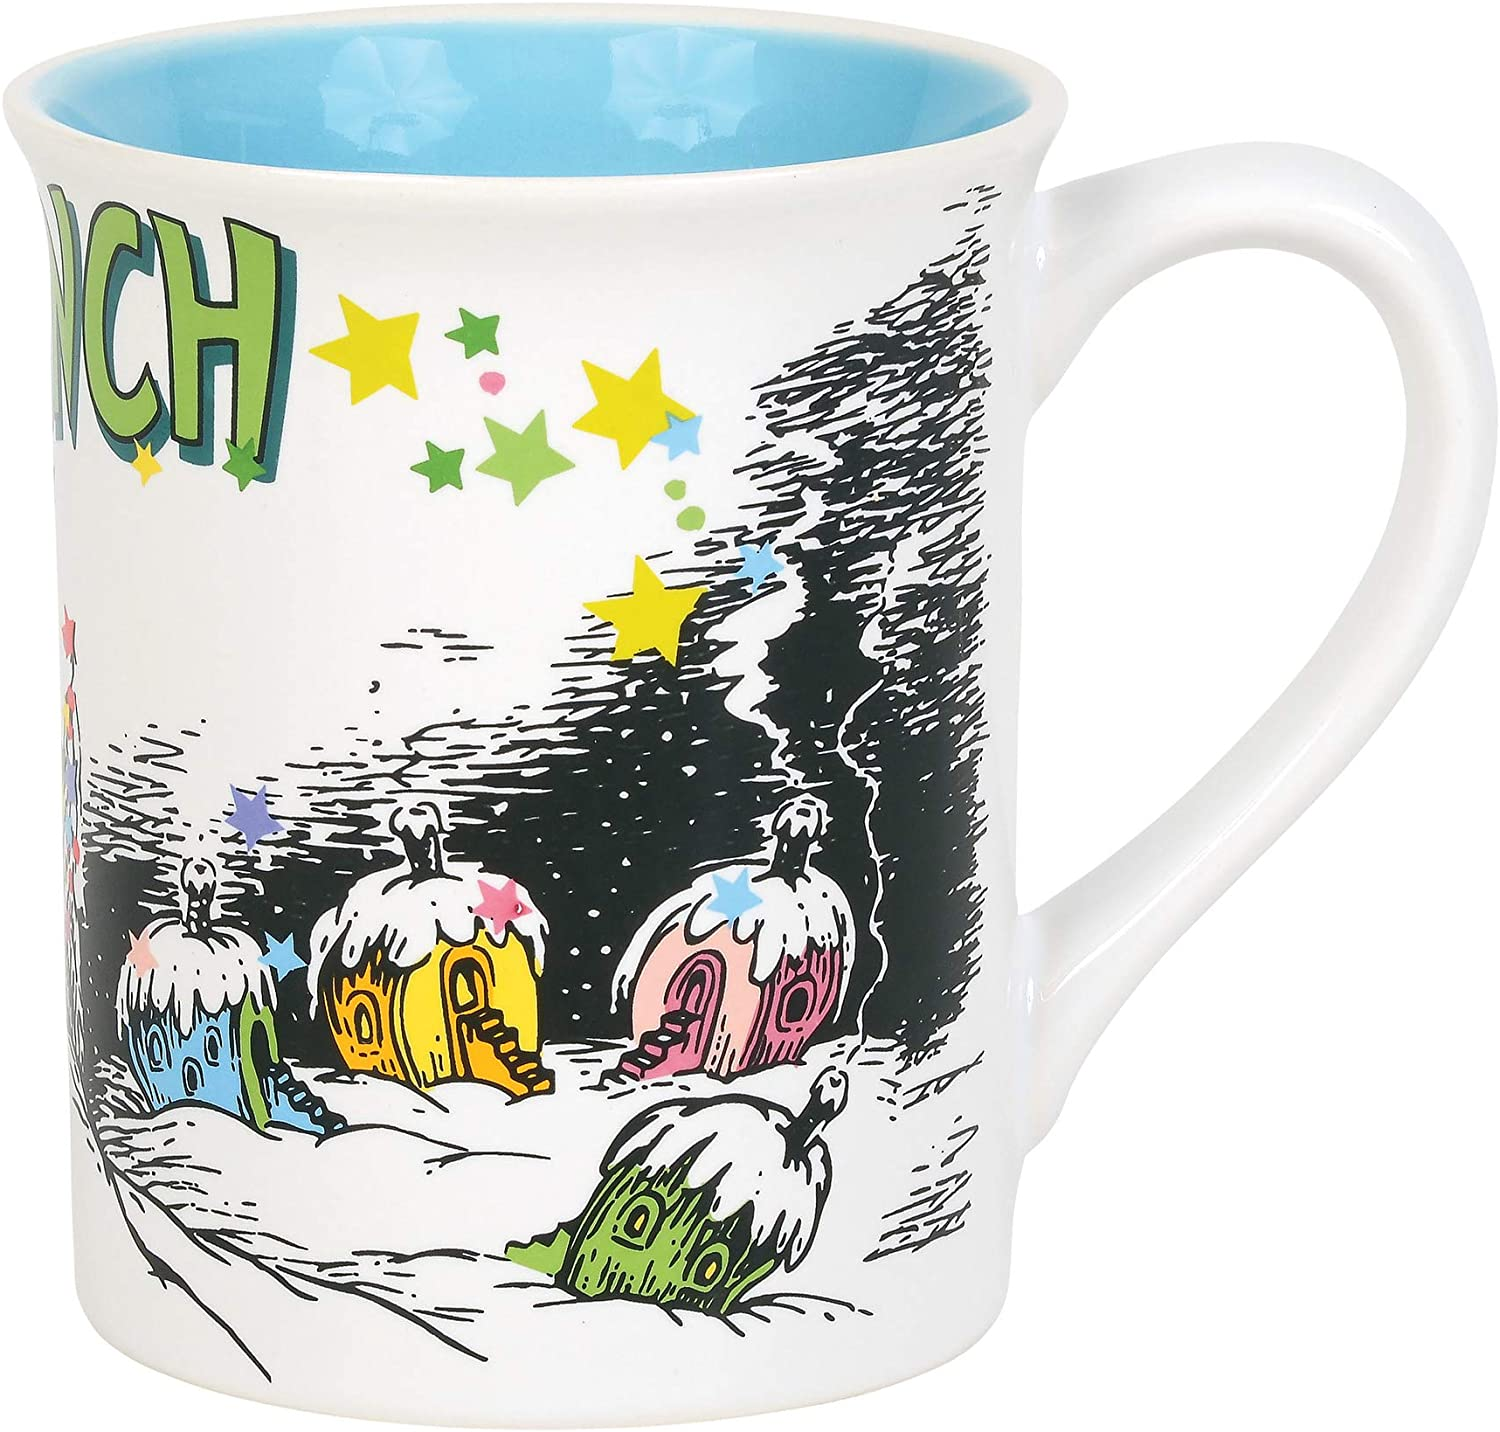 Department 56 The Grinch Whoville Coffee Mug, 16 Ounce, Multicolor